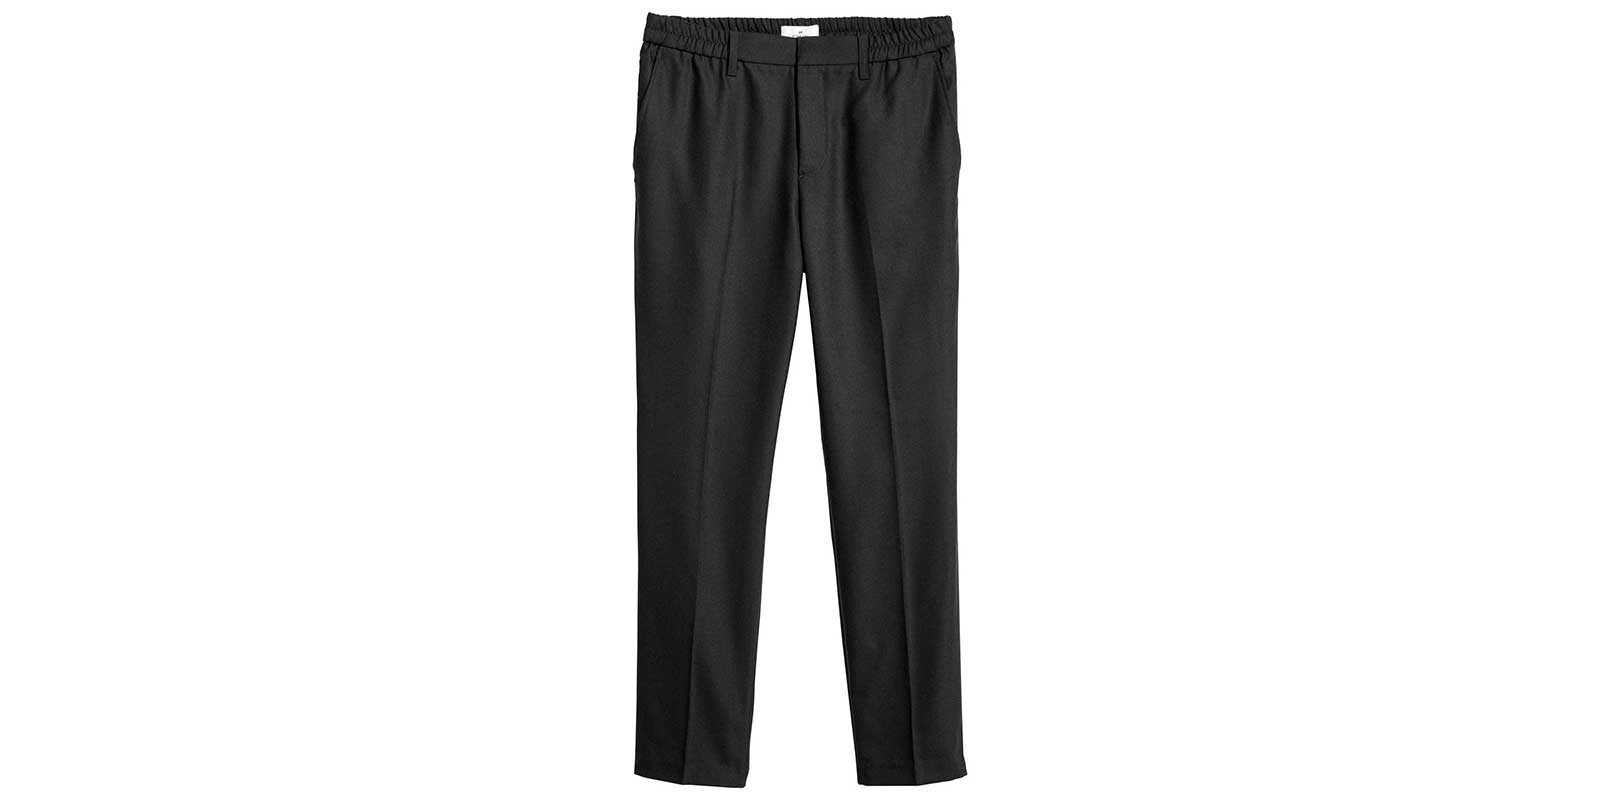 H&M Edition elasticated trousers